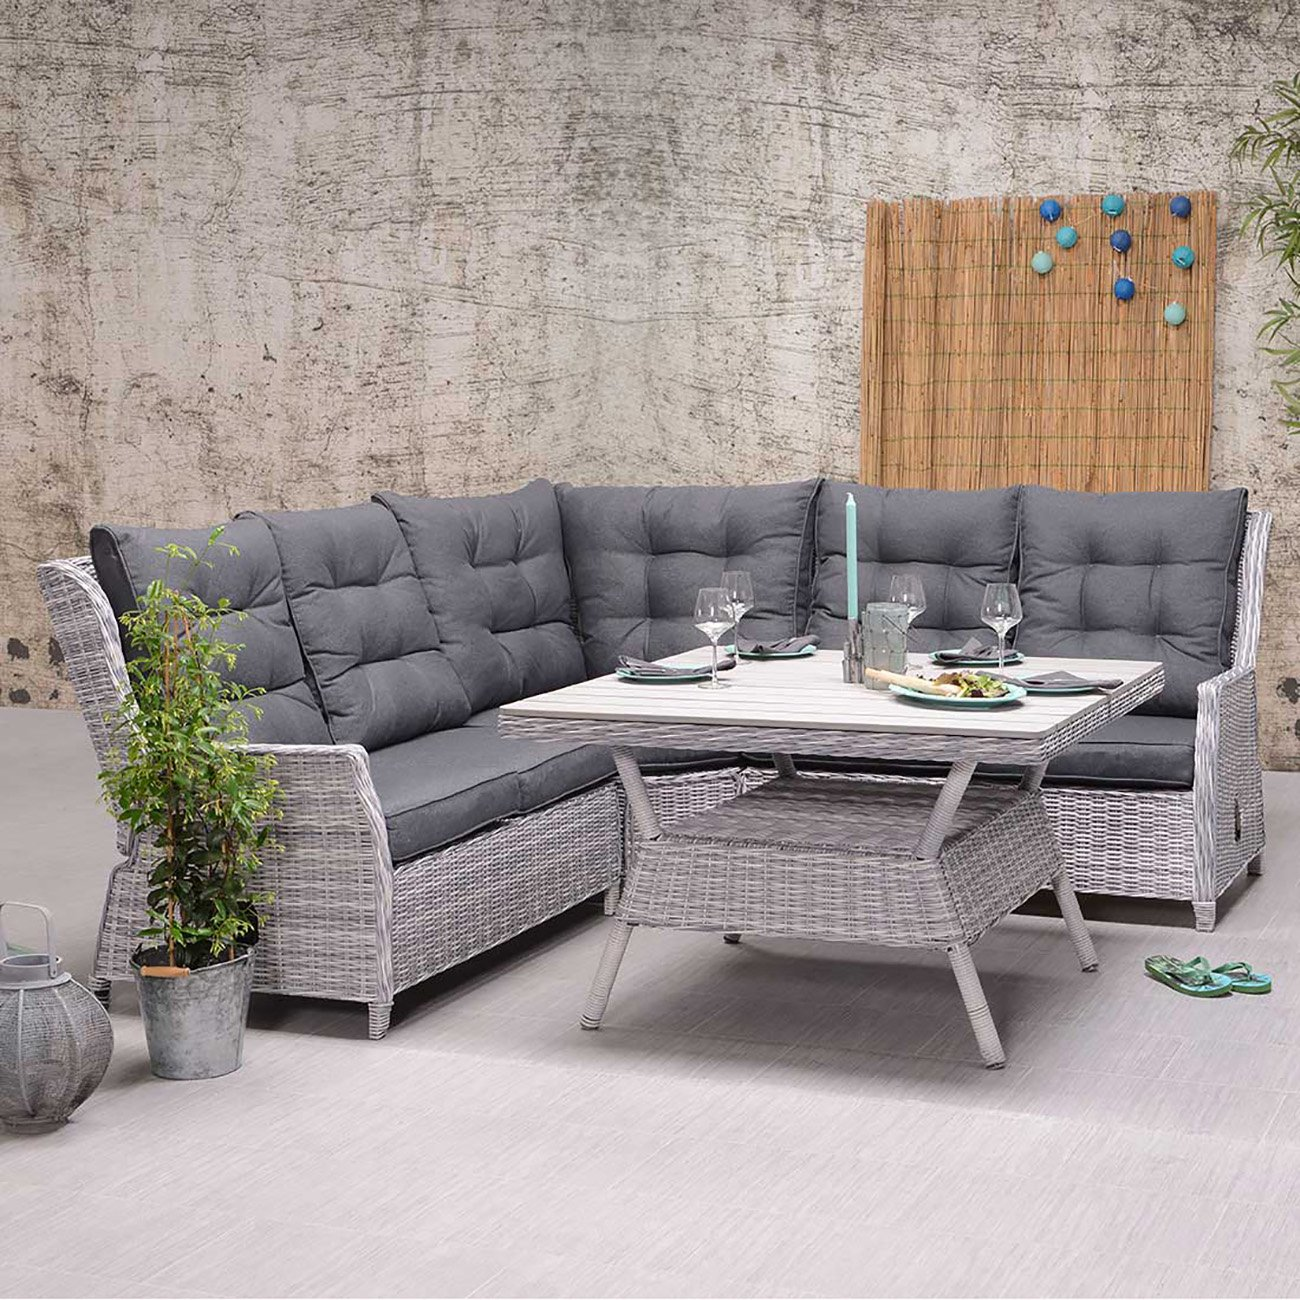 OUTLIV. Dunham Dininglounge 4tlg Geflecht Cloudy Grey Lounge Set